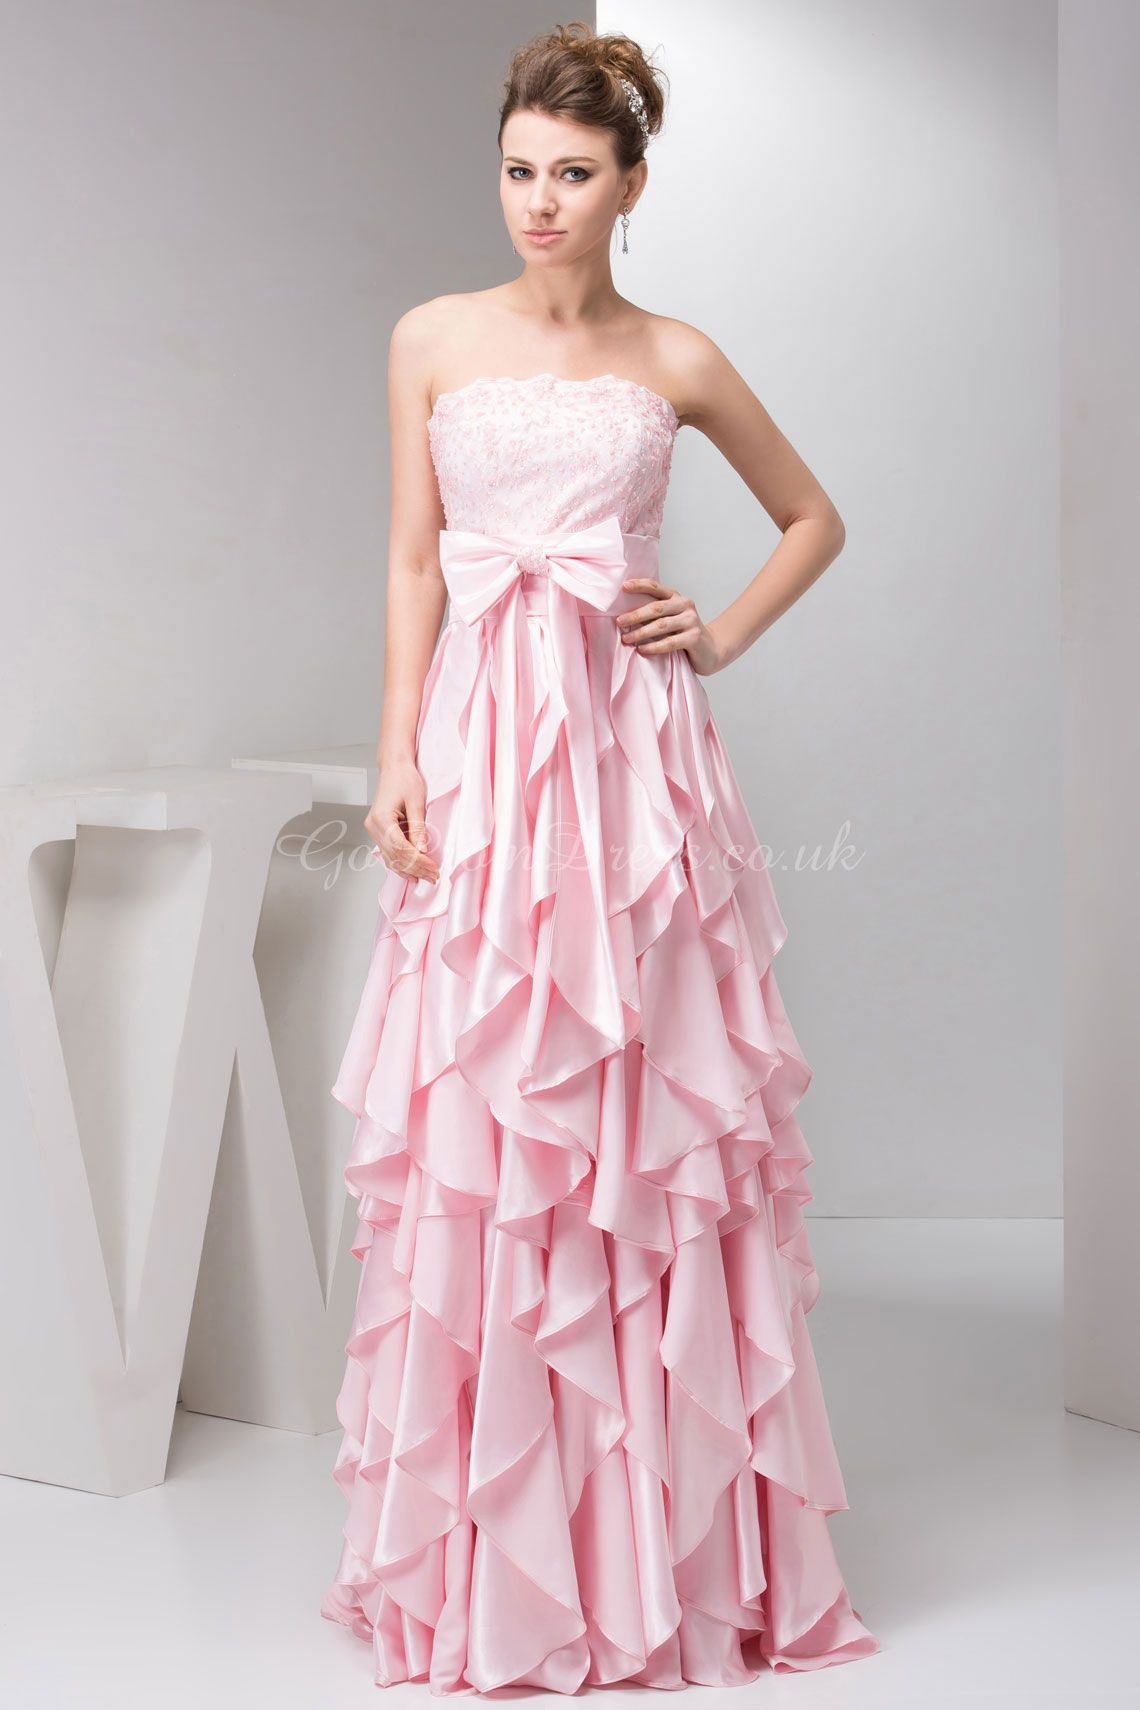 Prom Dress Senior Prom uc Pinterest Prom Pink dresses and